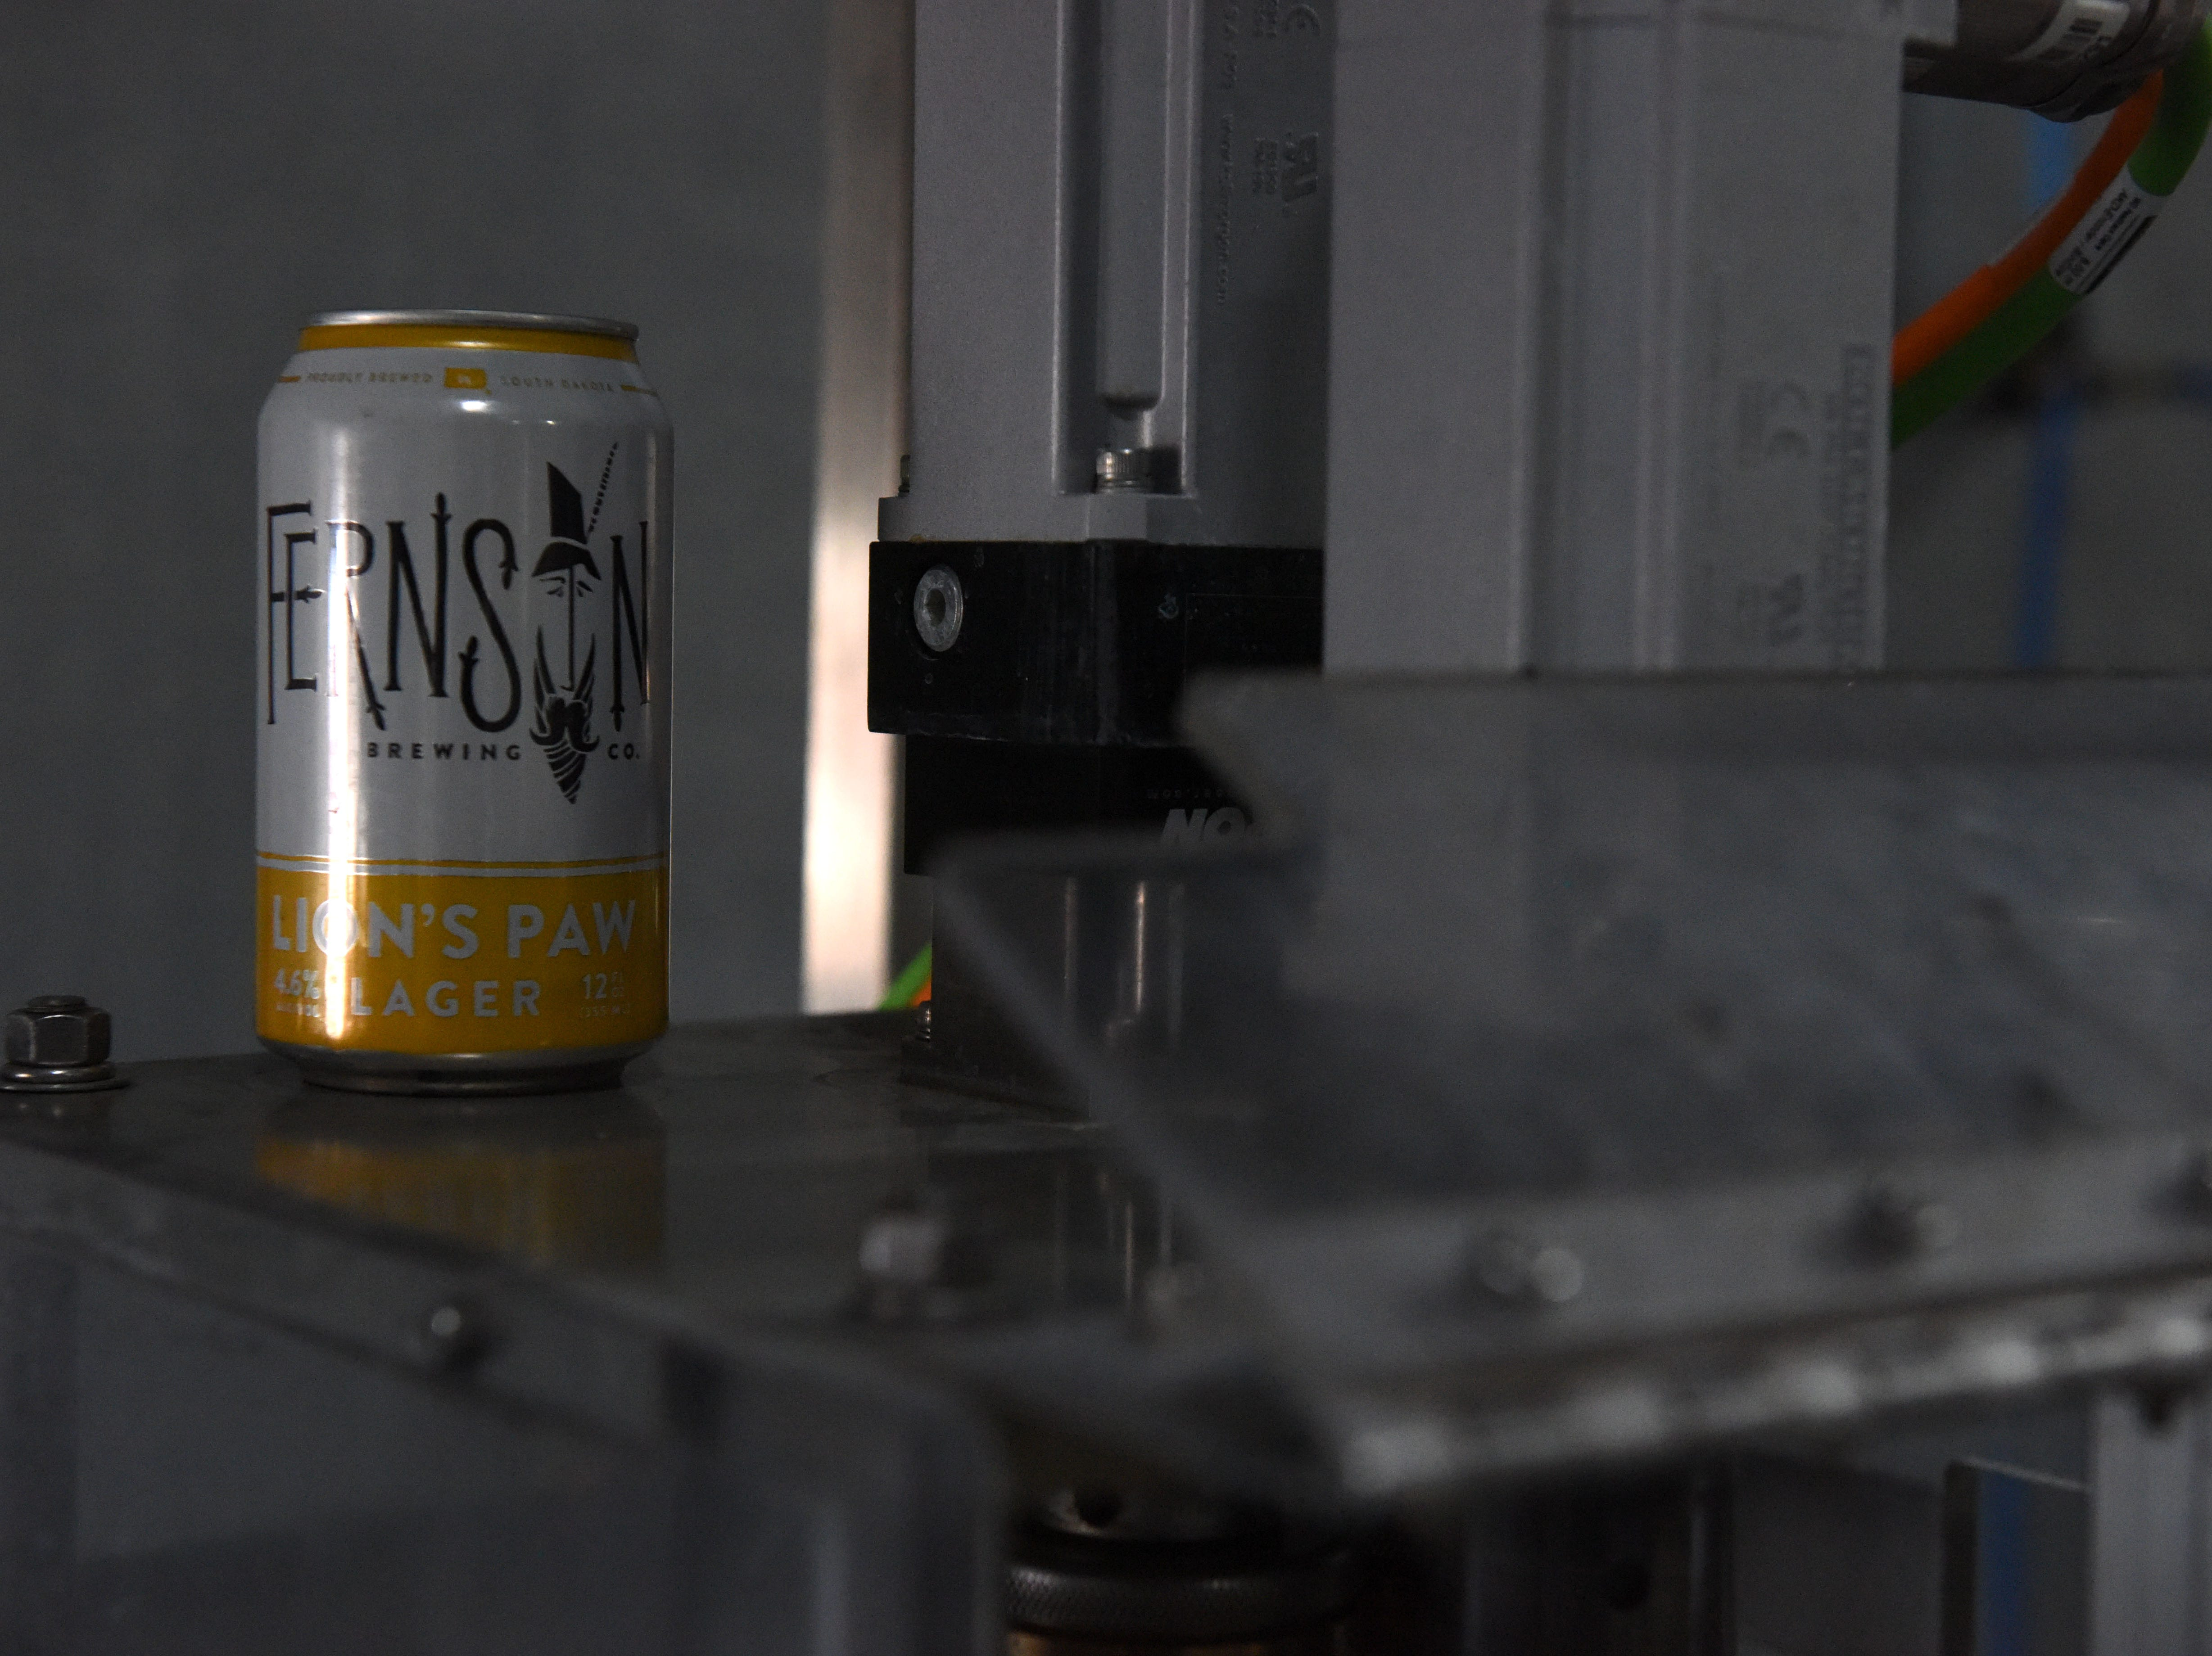 A can of Lion's Paw Lager is shown at Fernson Brewery, Monday, Jan. 7, 2019 in Sioux Falls, S.D.